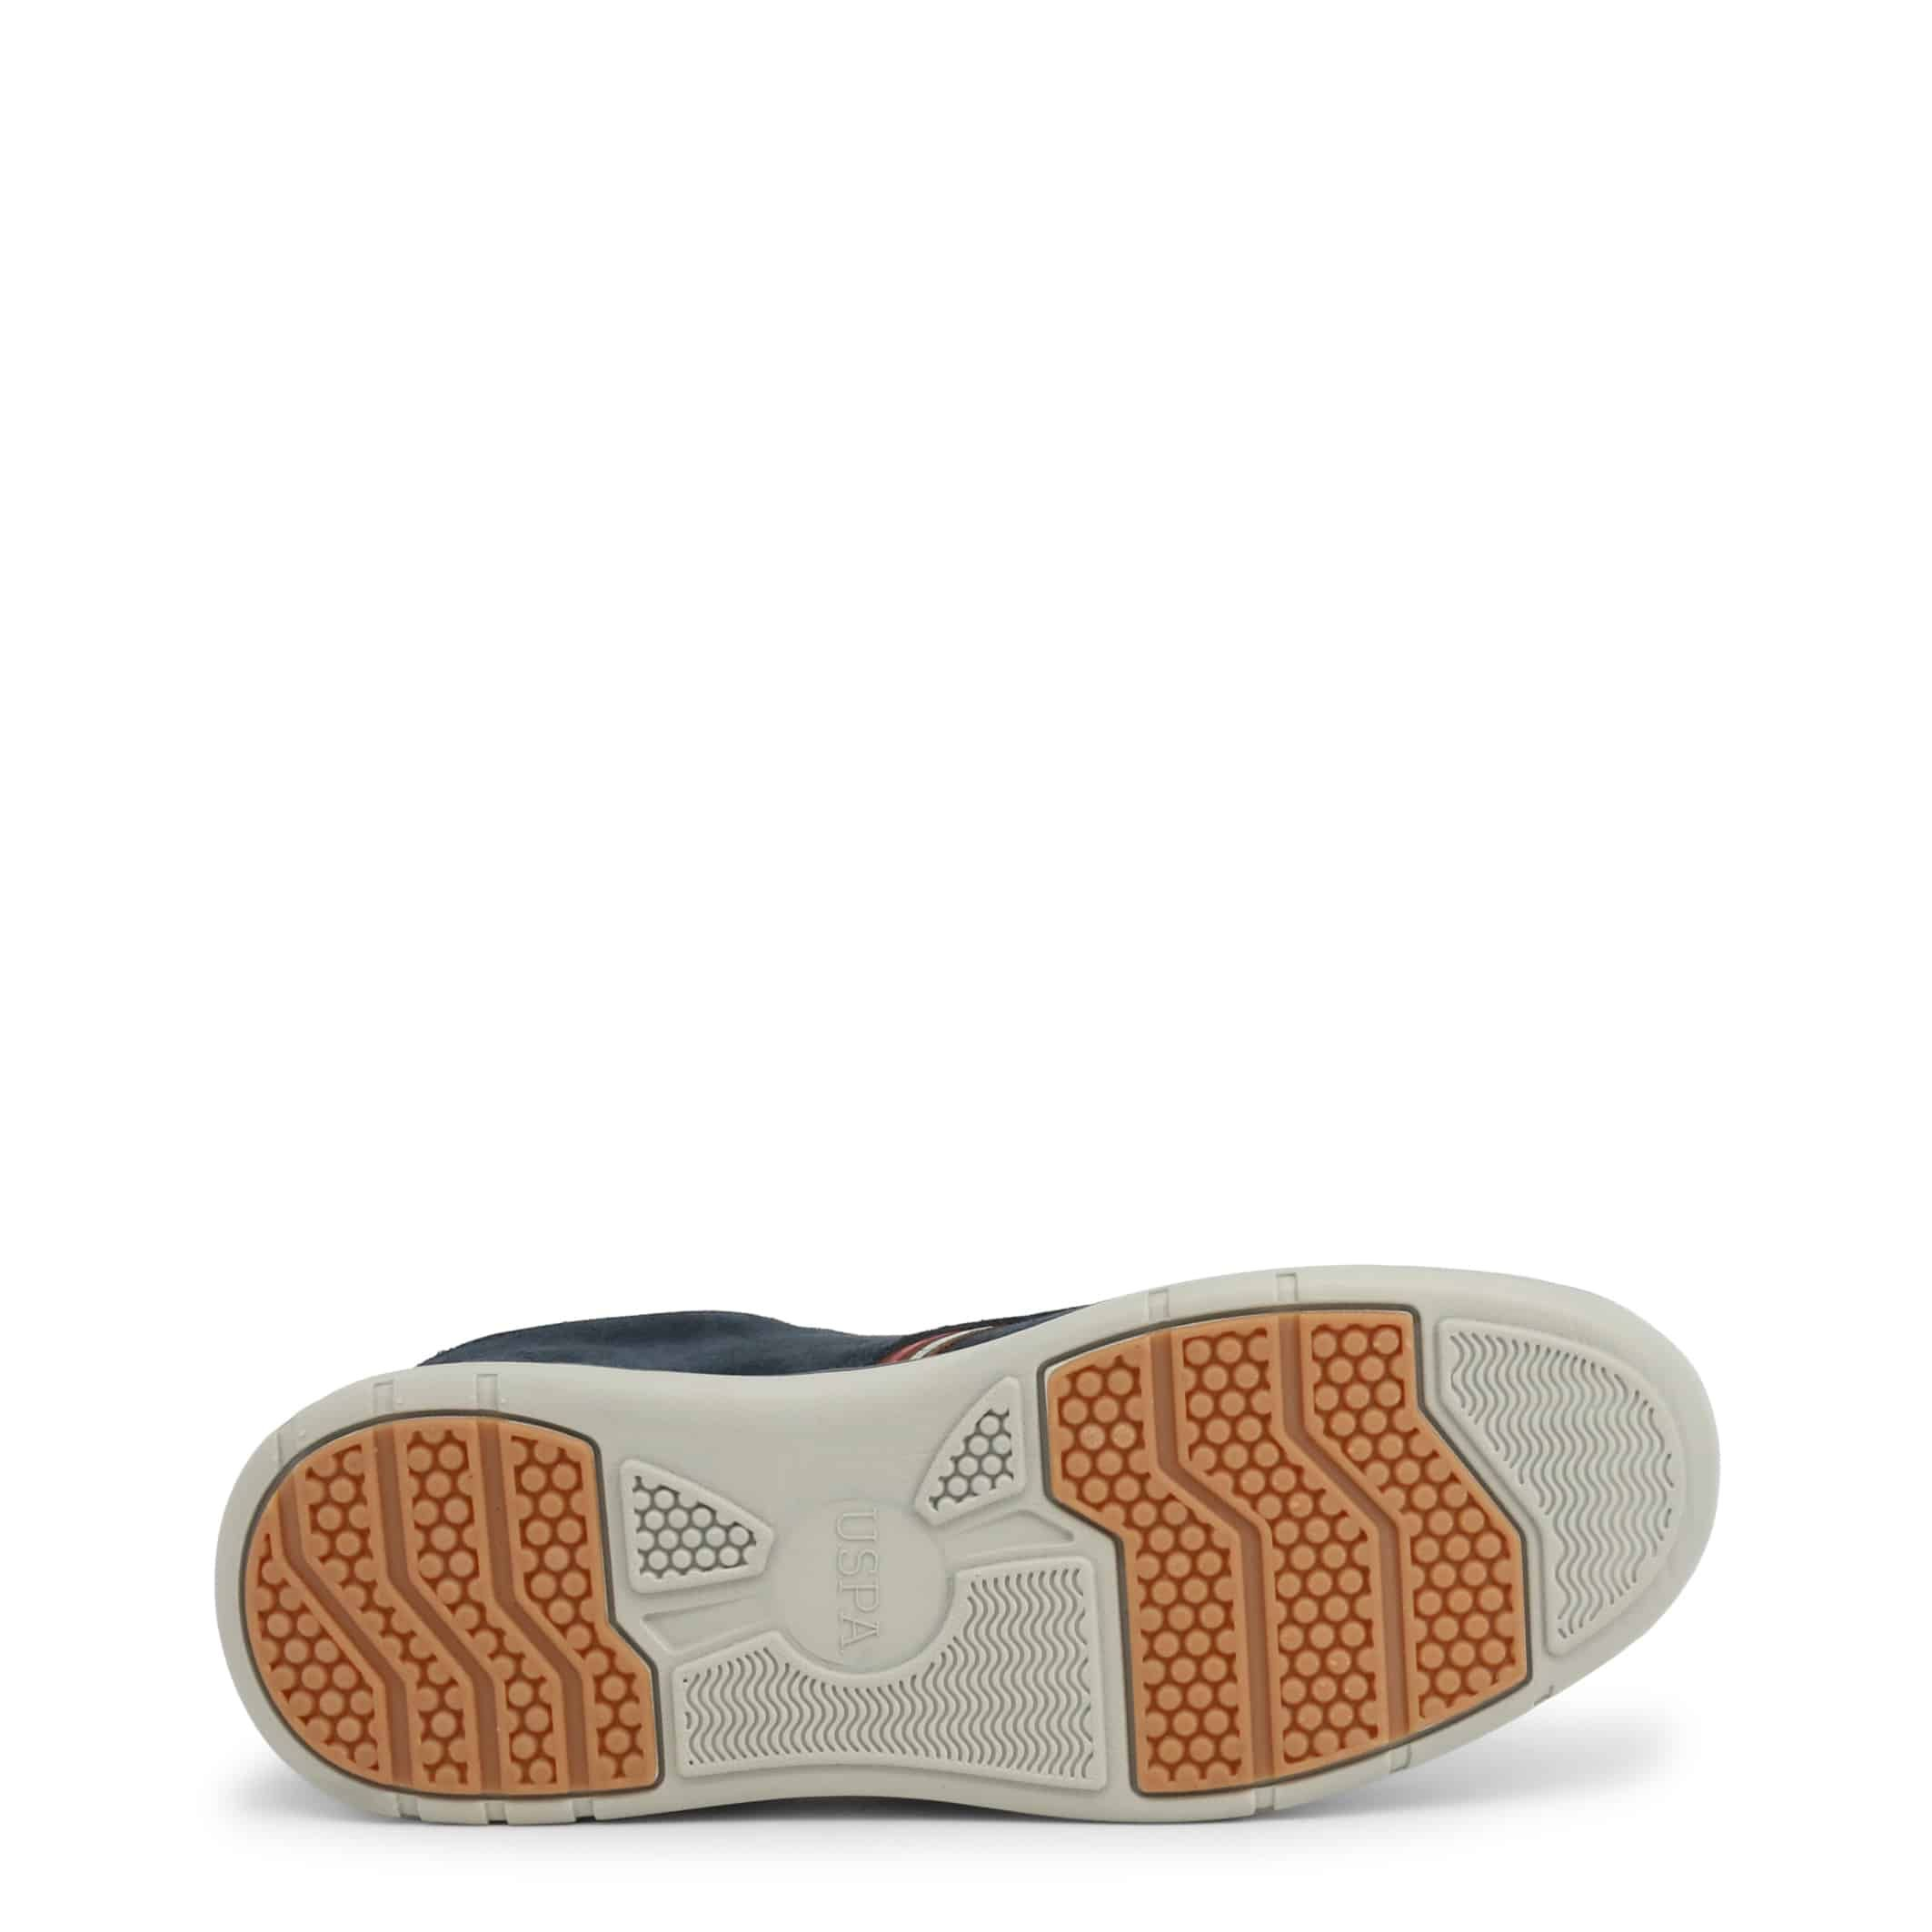 Sneakers U.S. Polo Assn. – YGOR4169S0_SY1